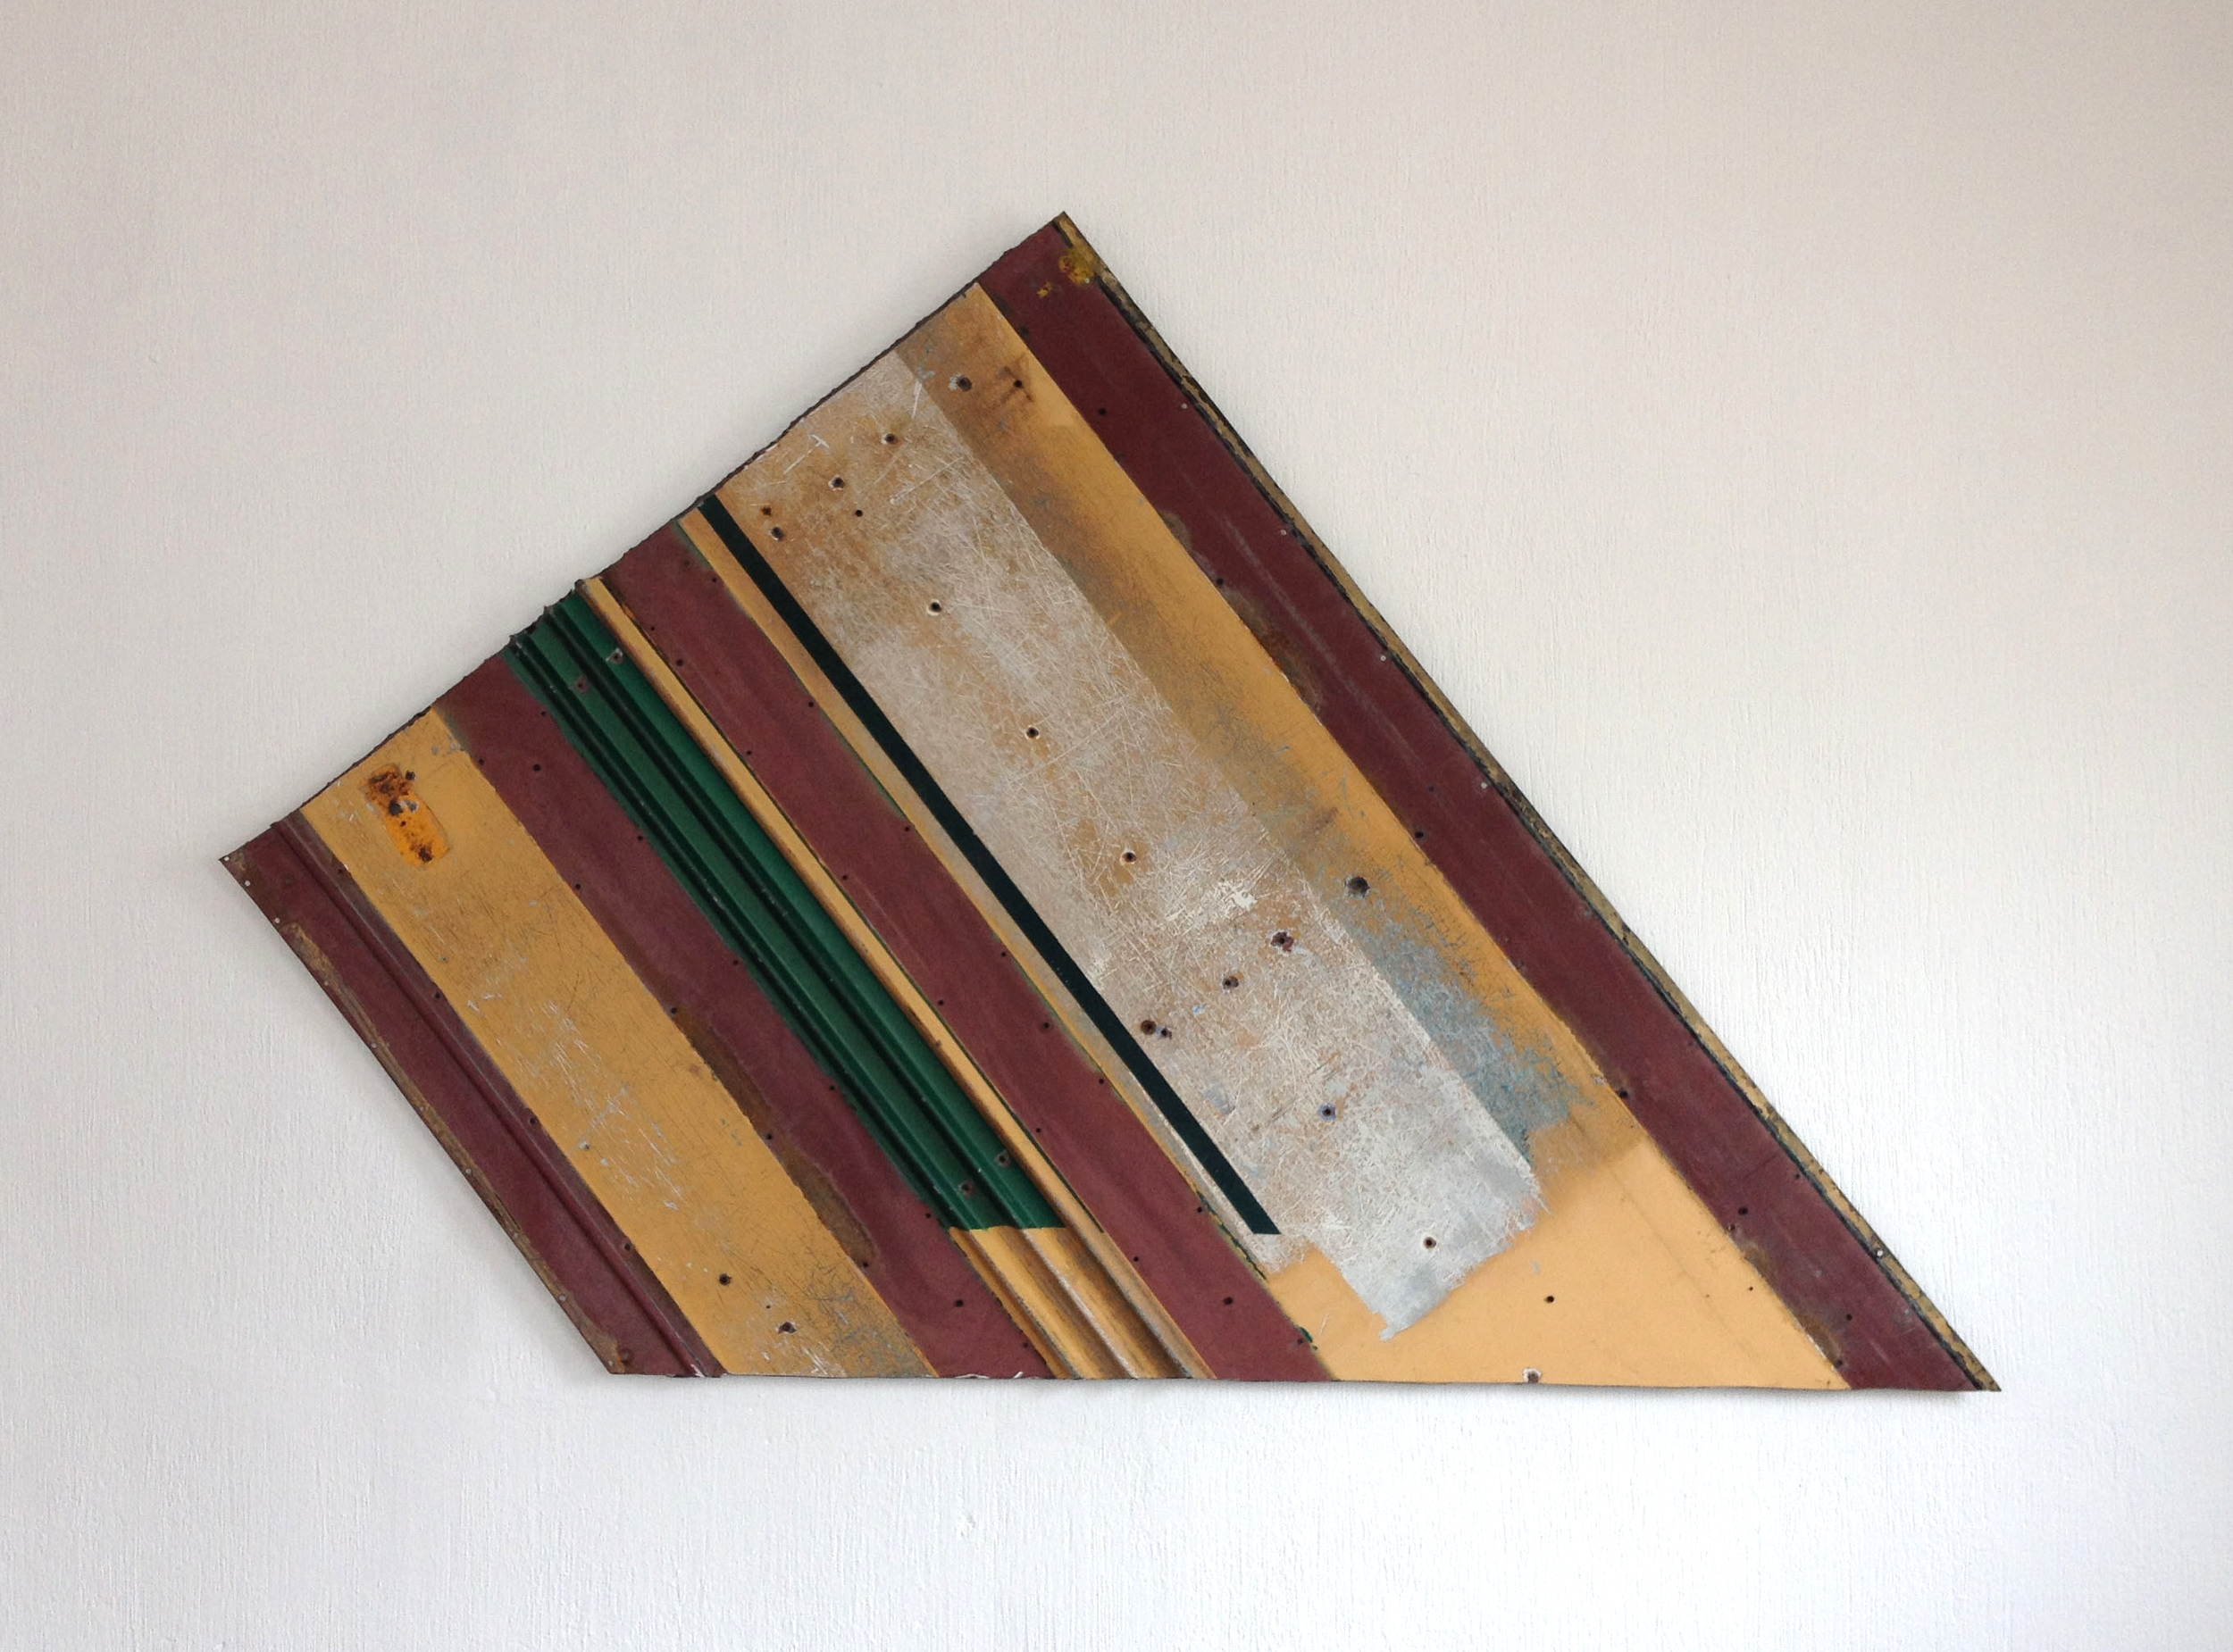 Geometric Construction No. 1    2014  Urban bus found iron panel  assambled on wood and conserved with  acryloid.  168 x 104 x 4 cm.  Photo credit: artist